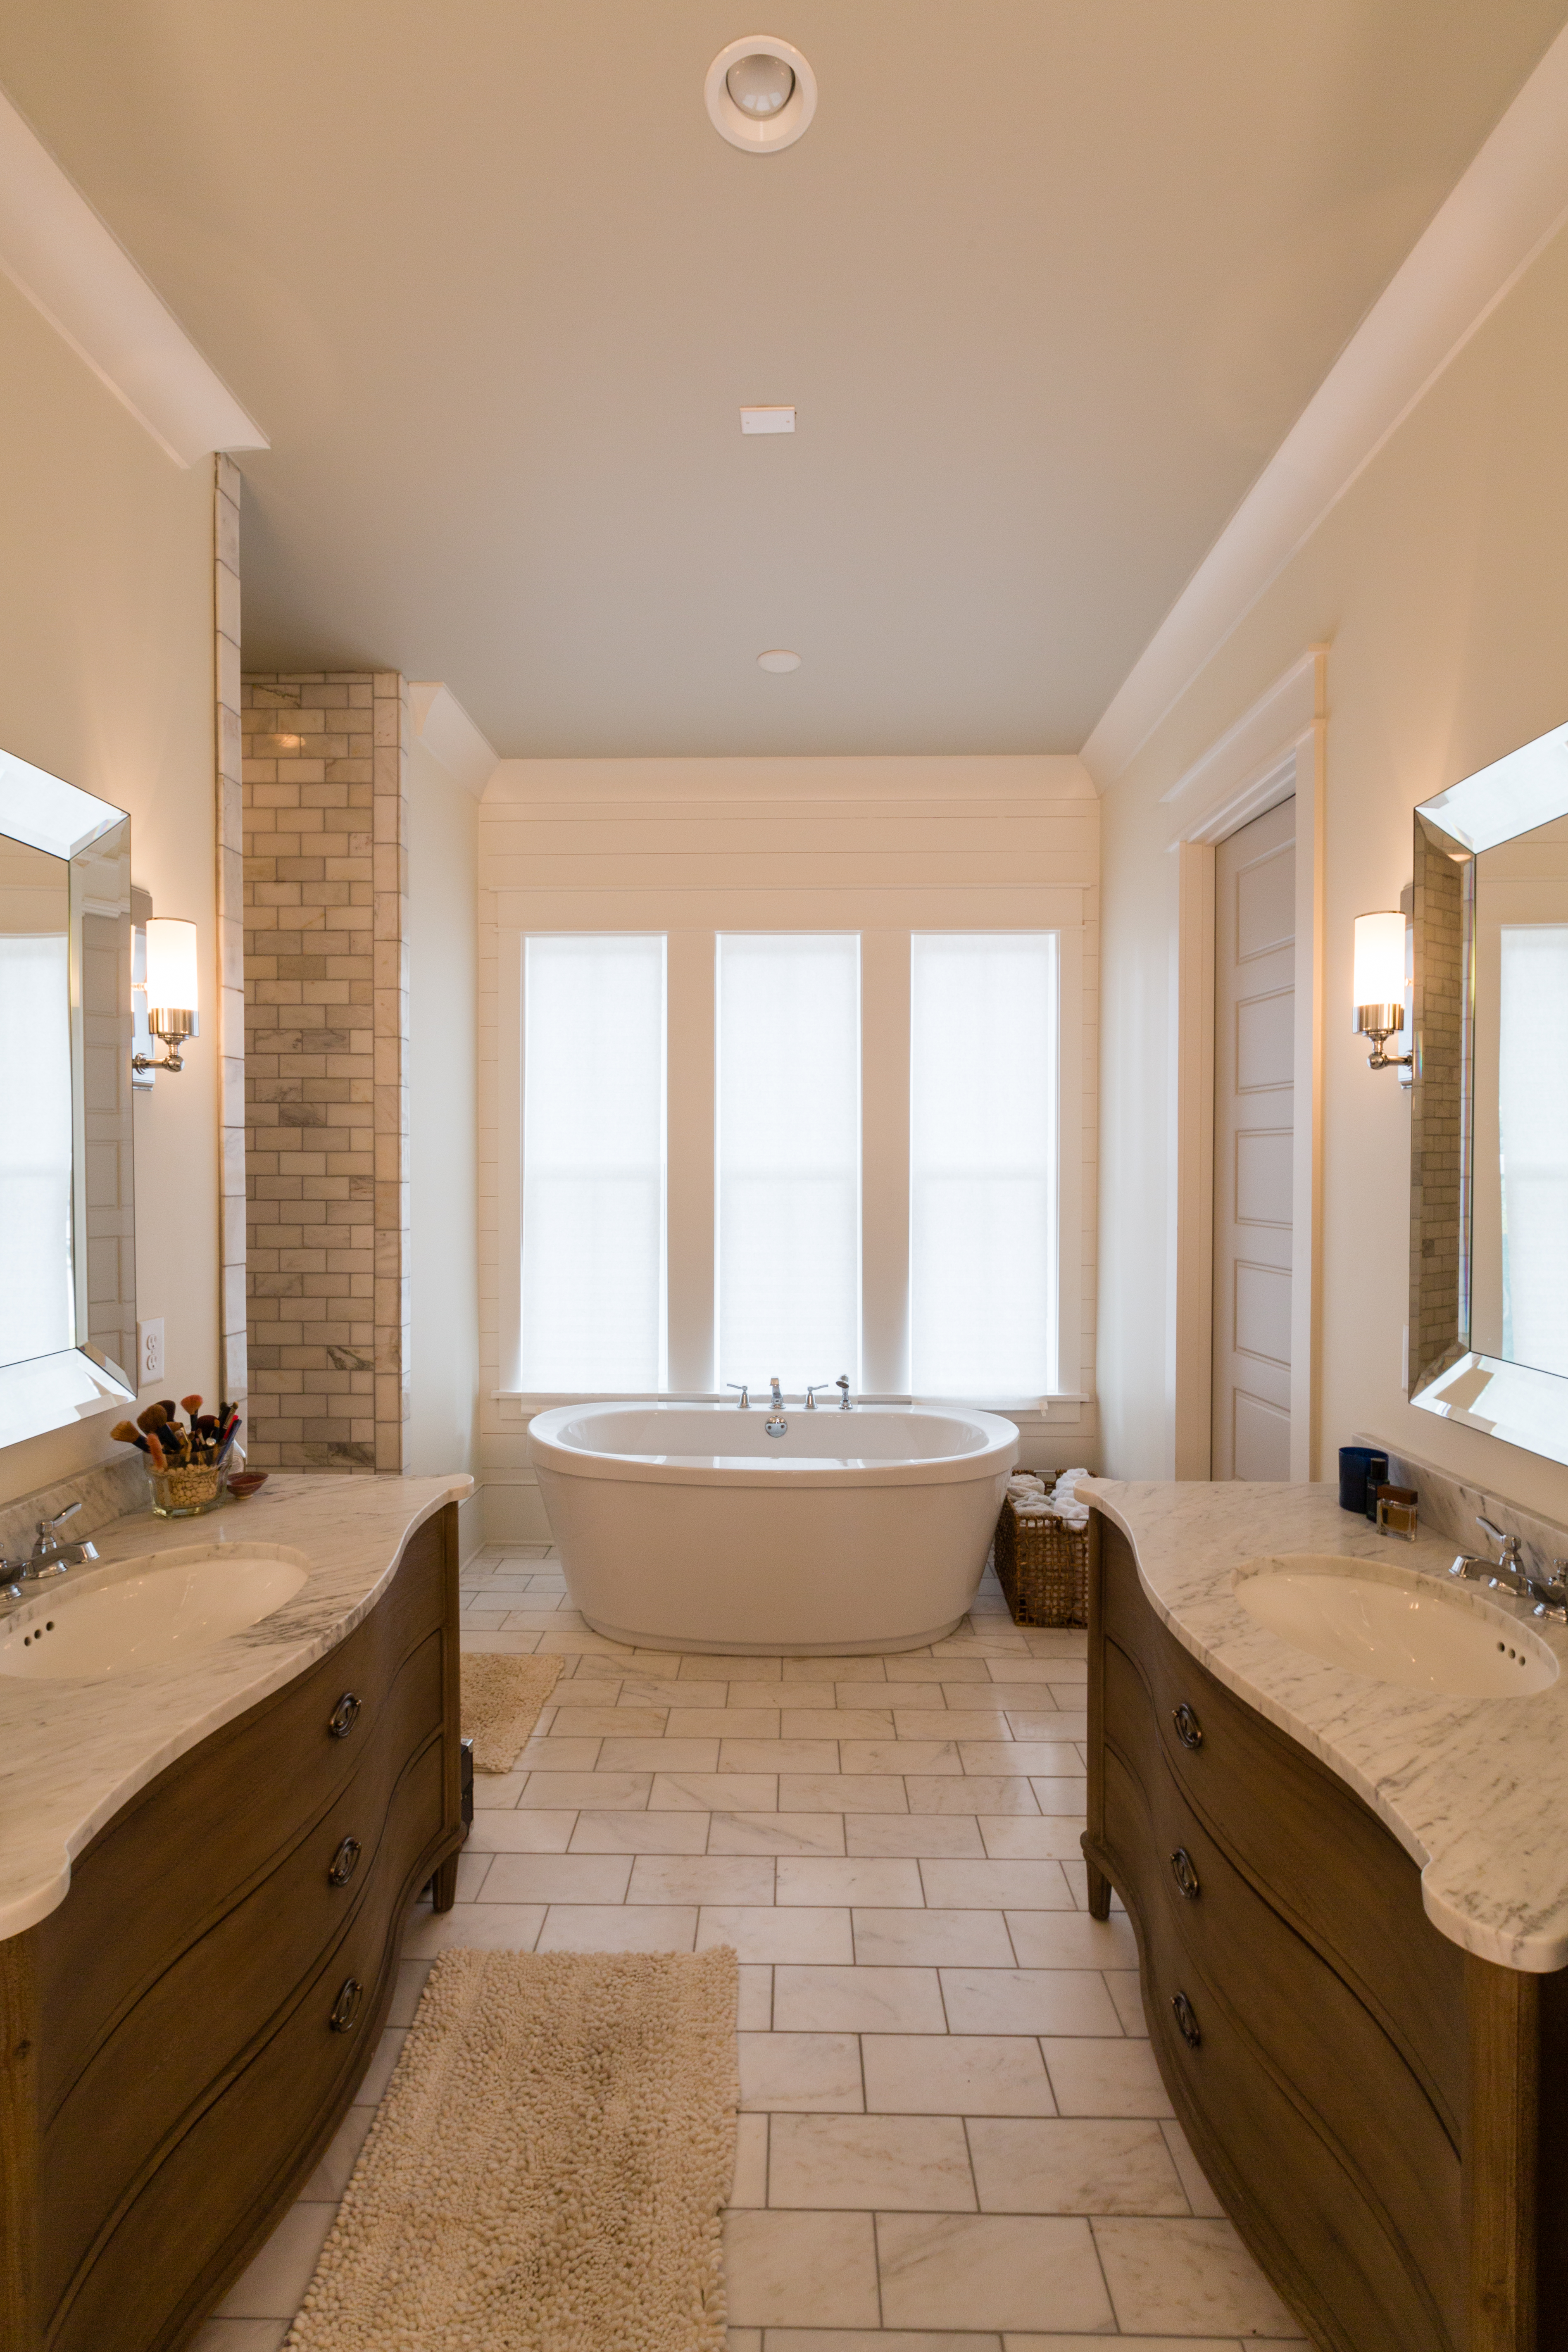 bath remodeling disposition and heartland accesskeyid alloworigin bathroom kitchen